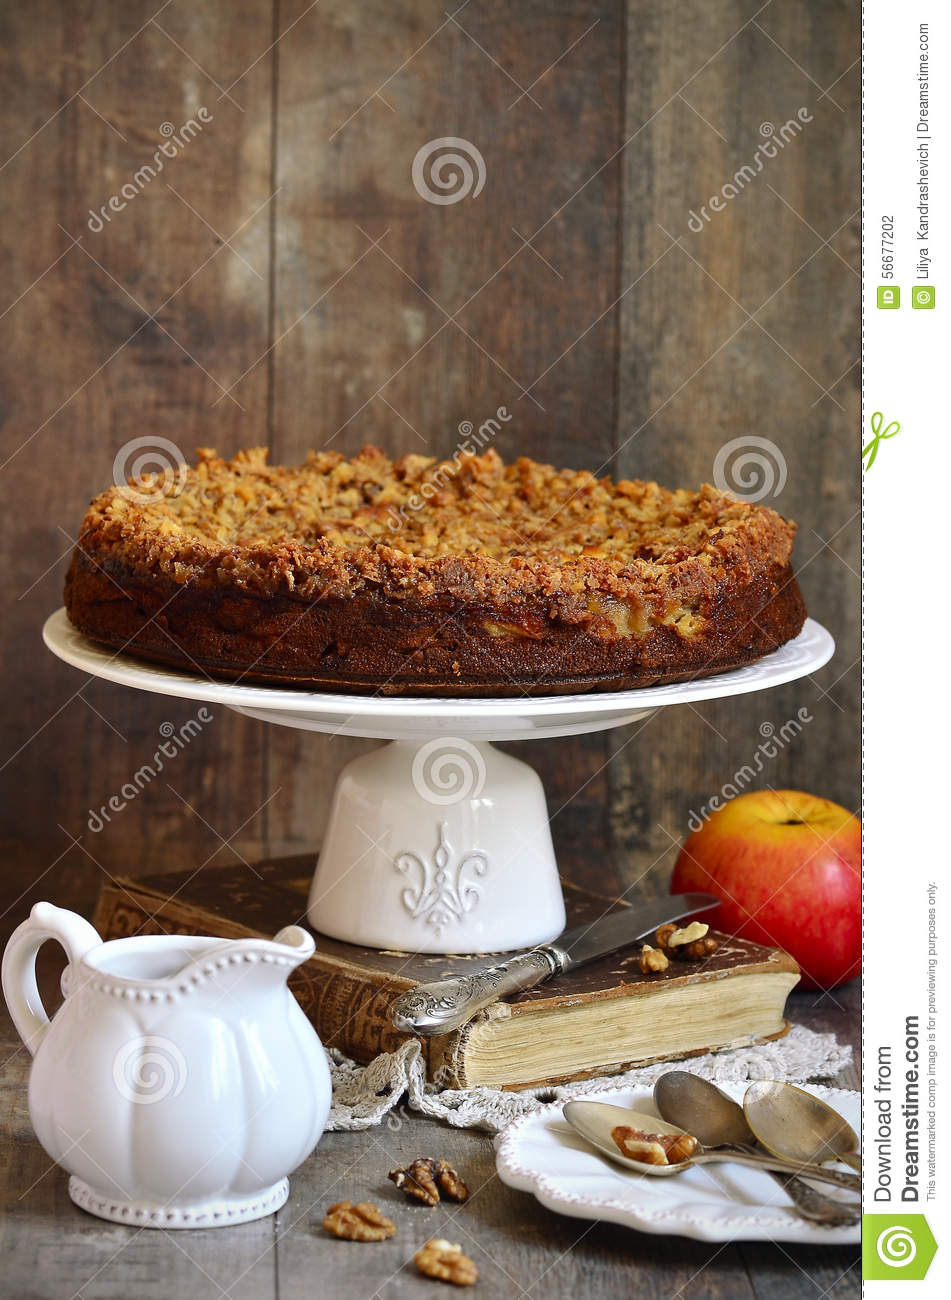 Apple Pie With Walnut And Sugar Glaze. Stock Photo - Image ...